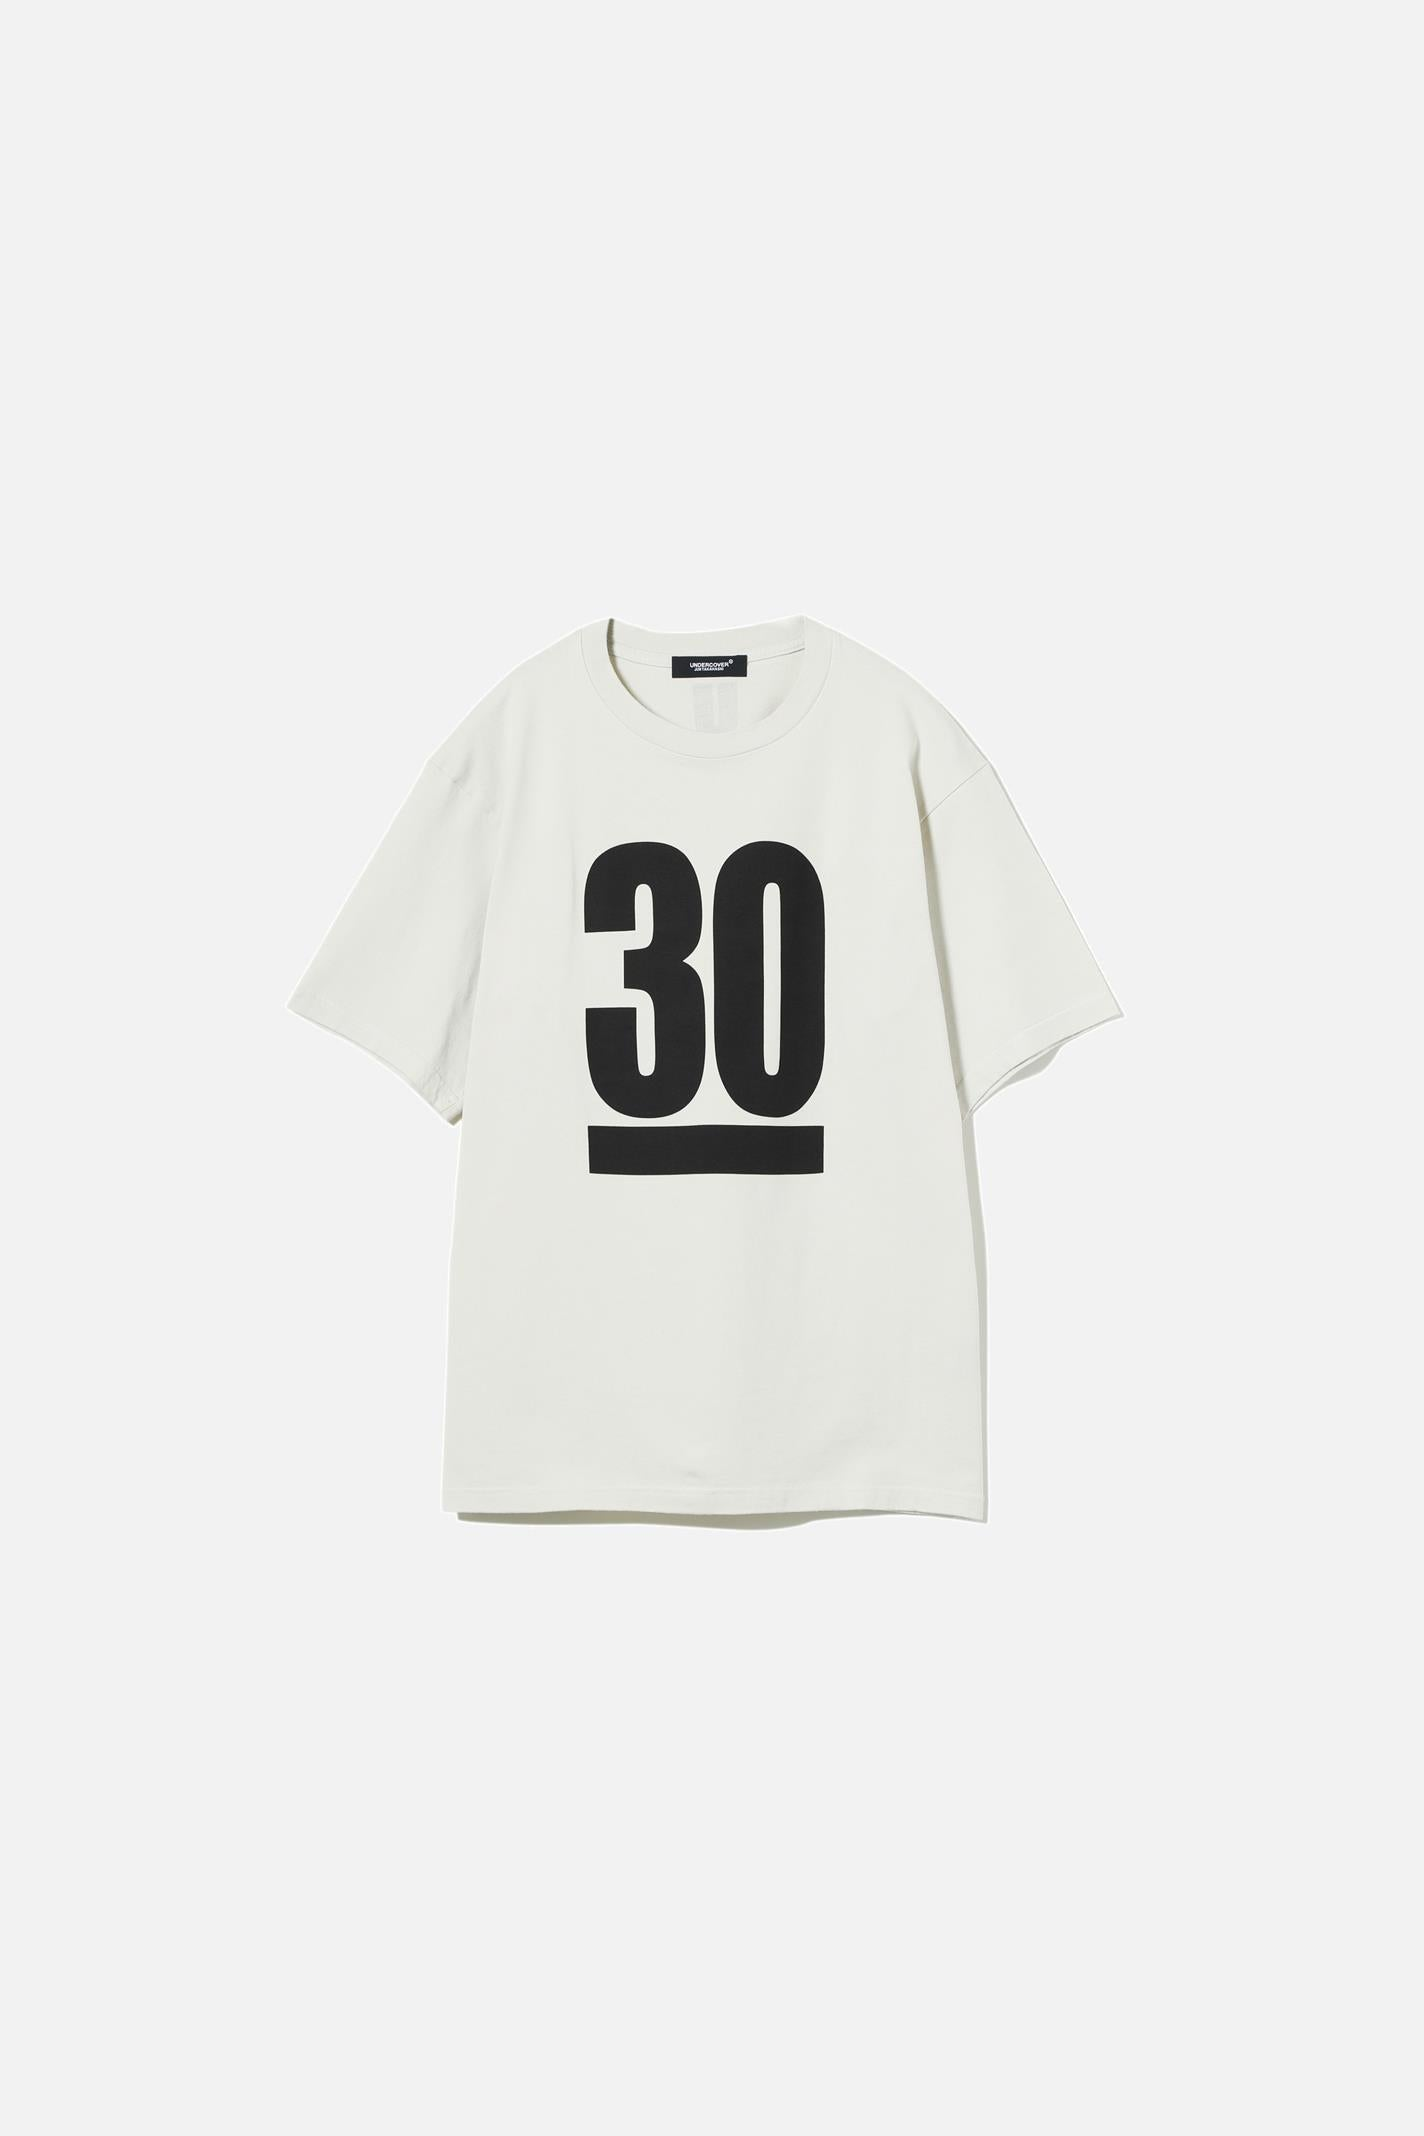 30th Year Anniversary Tee